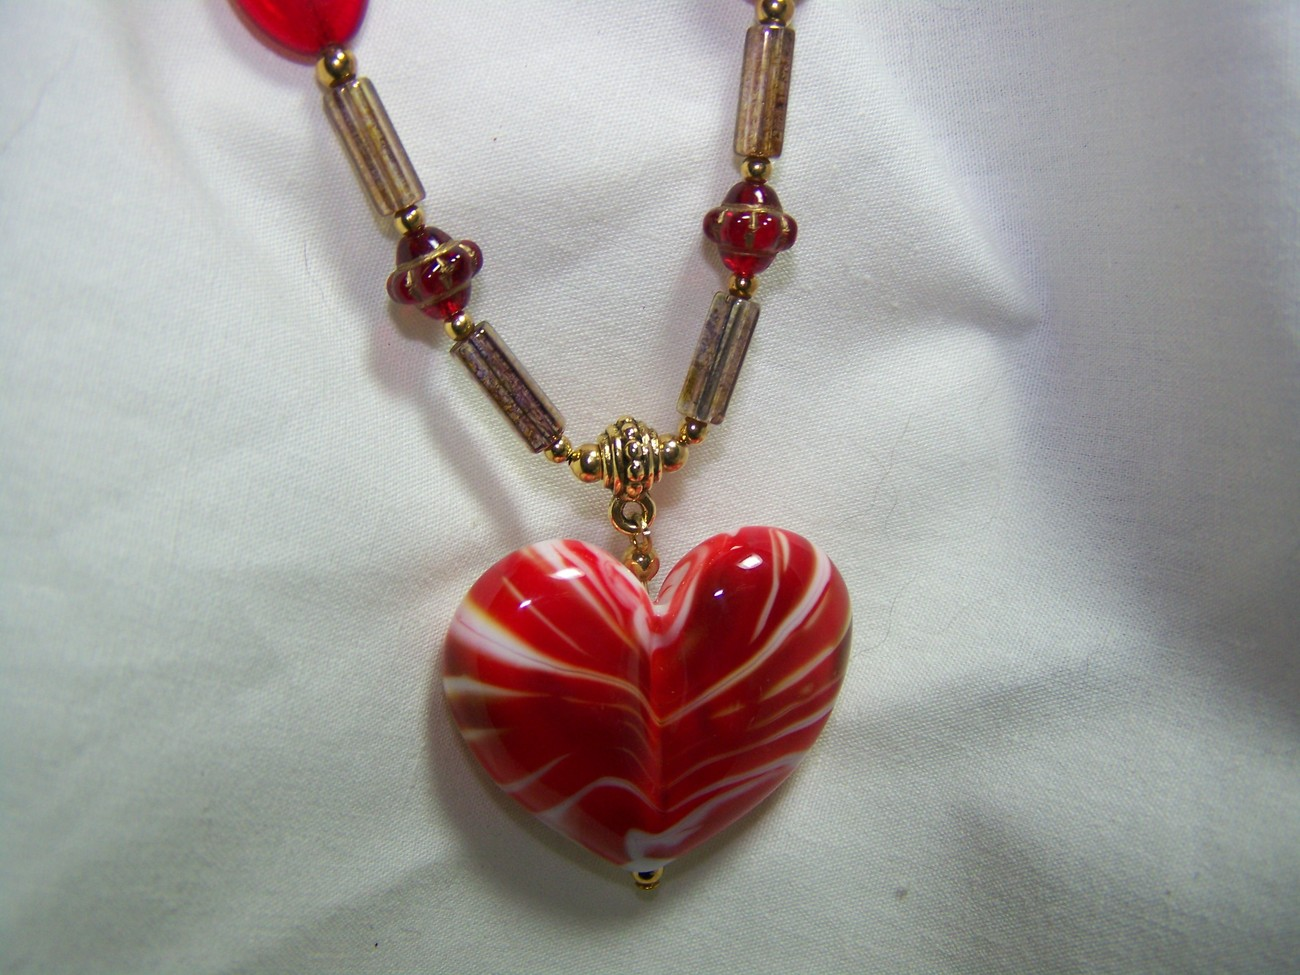 Heart lampwork glass red czech 18 1/4 inch pendant necklace